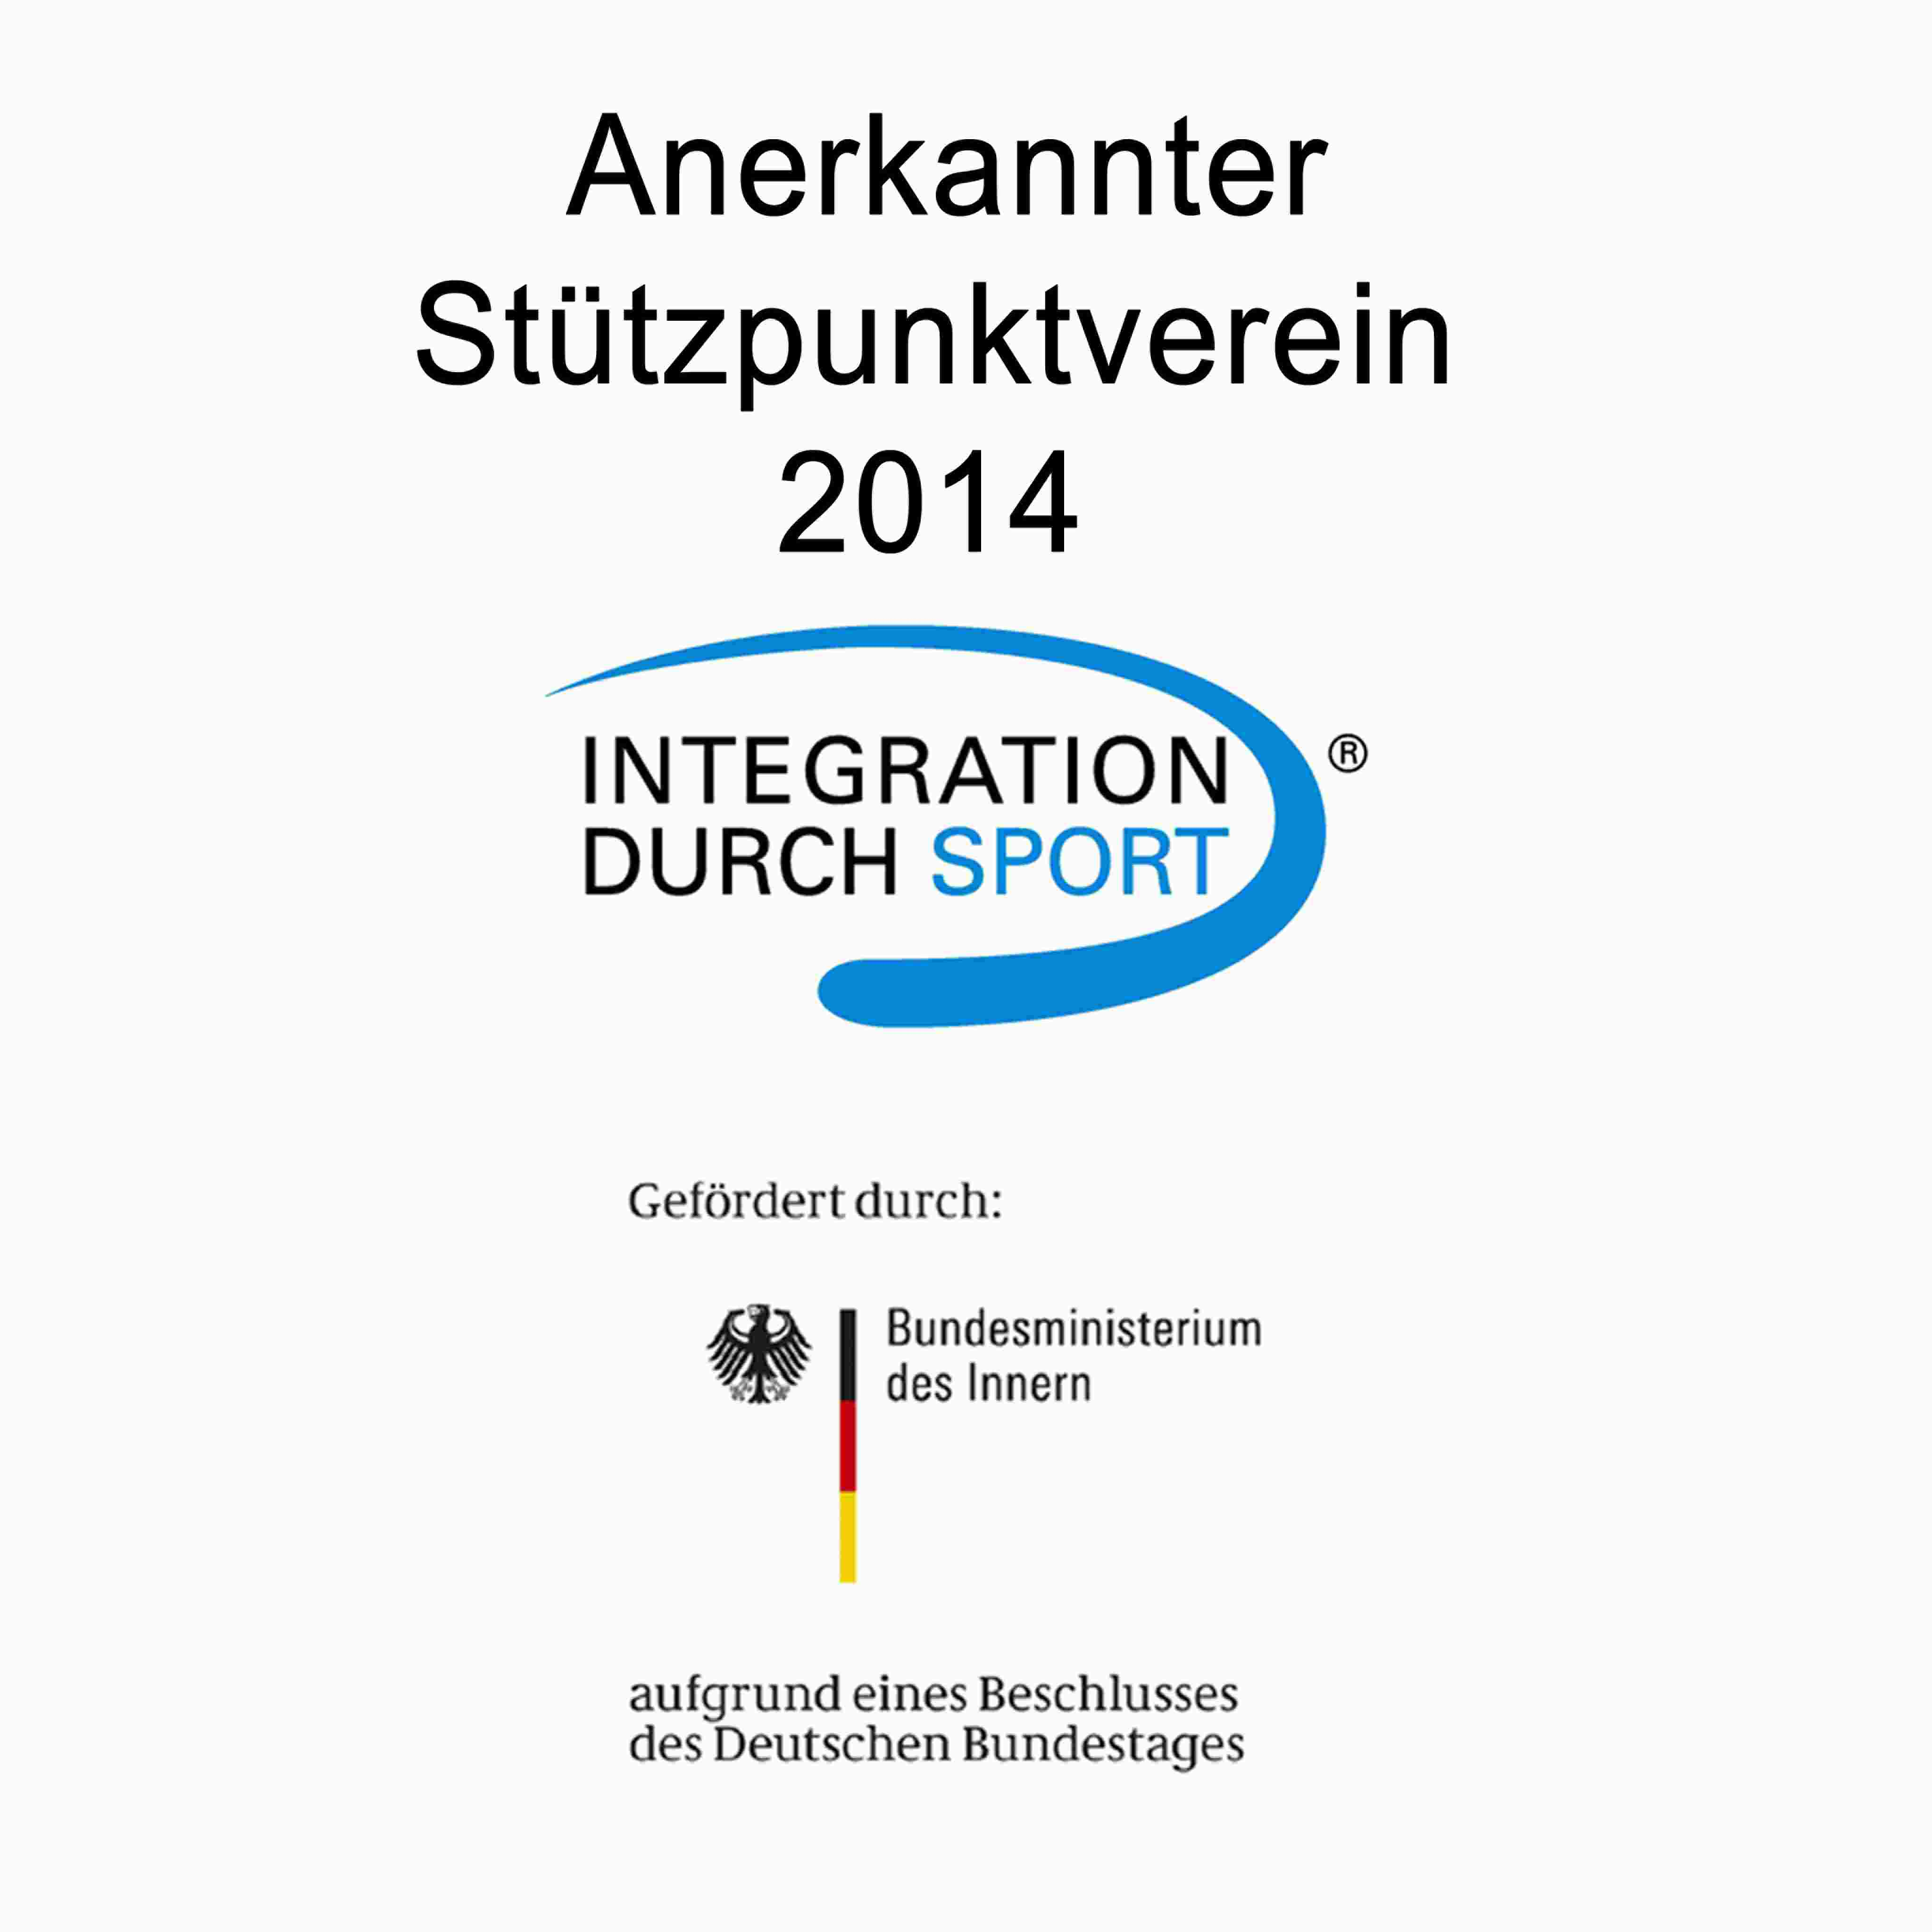 ButtonStuetzpunkverein2014